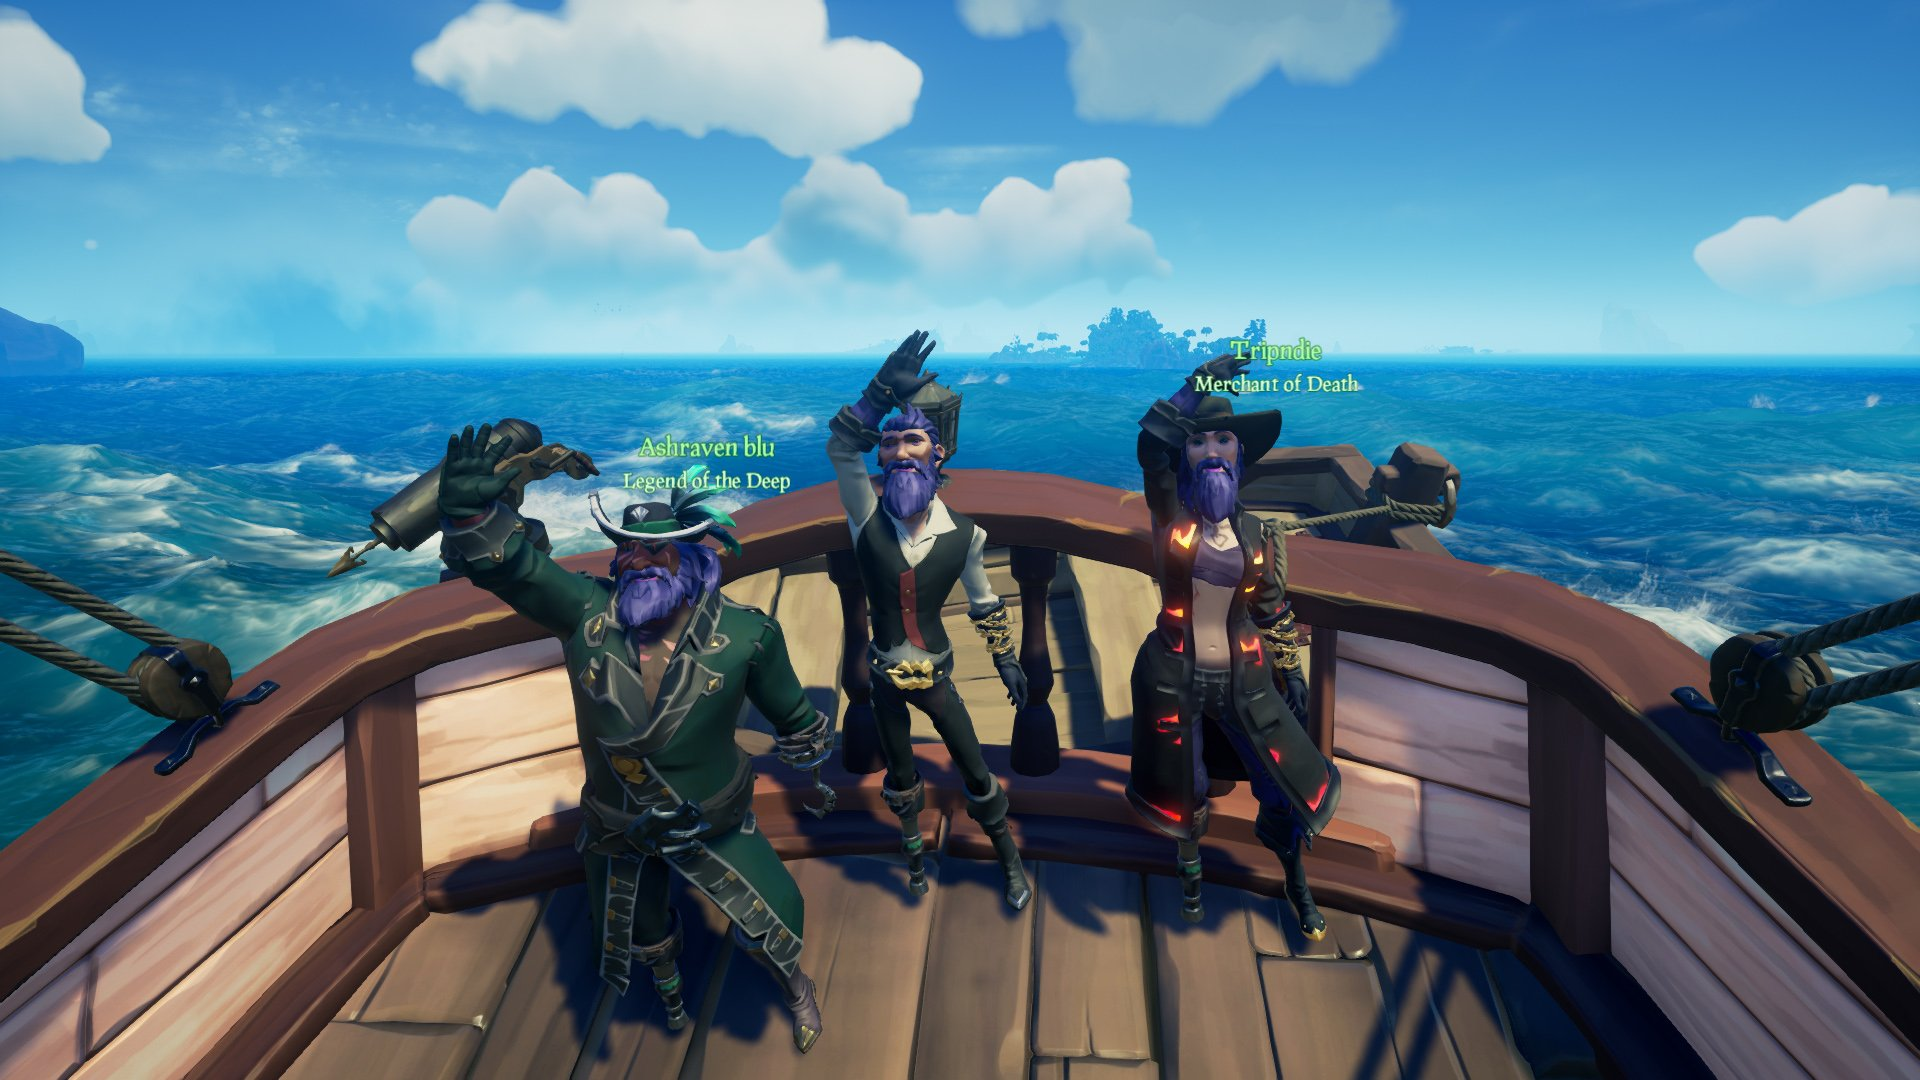 Sea of Thieves Show Umbra Legends of the Sea